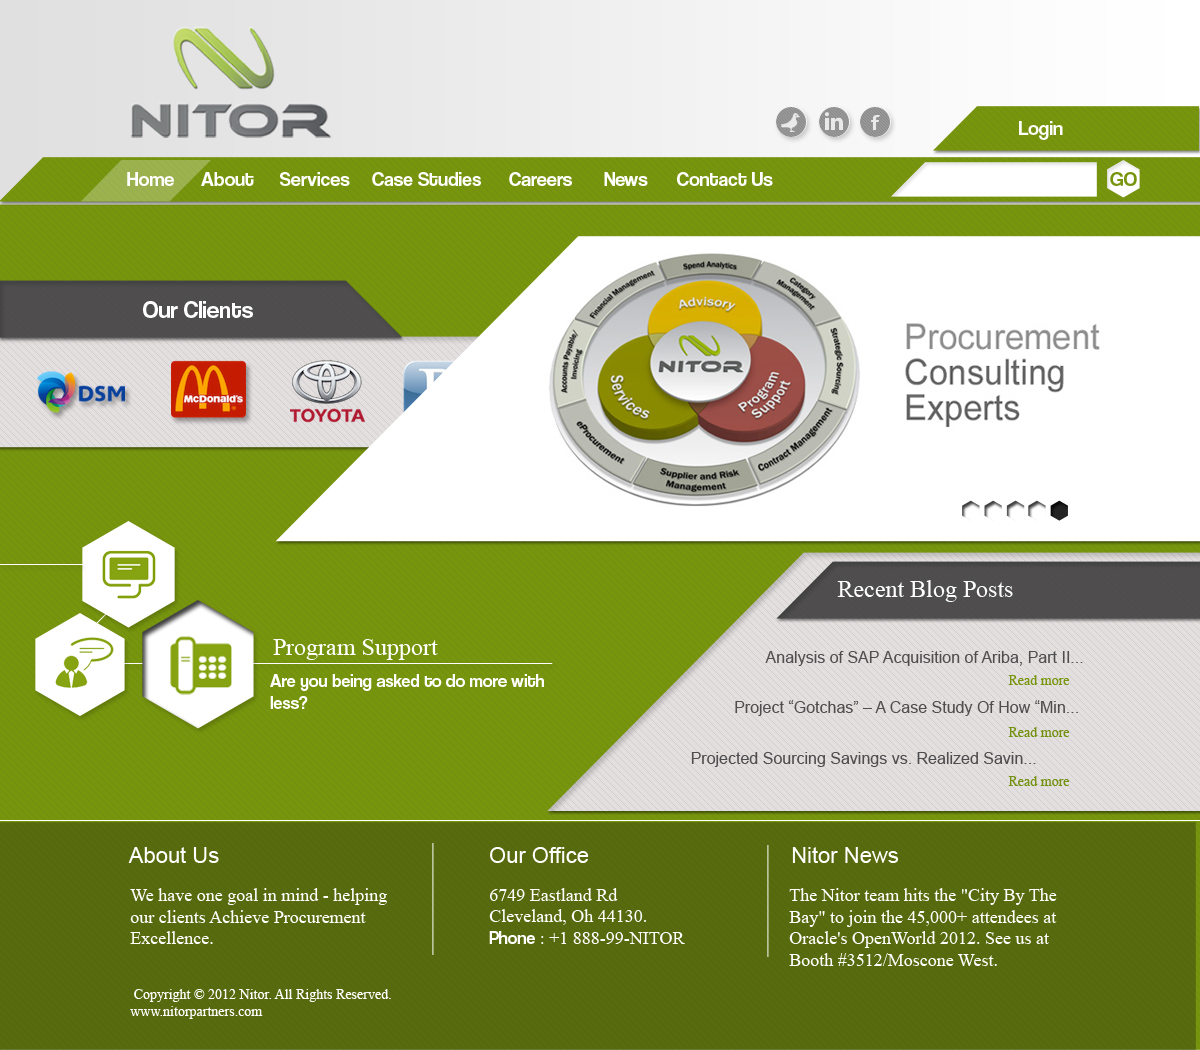 Web Page Design by Juan Paulo Manalo - Entry No. 22 in the Web Page Design Contest Nitor Partners Web Page Design.